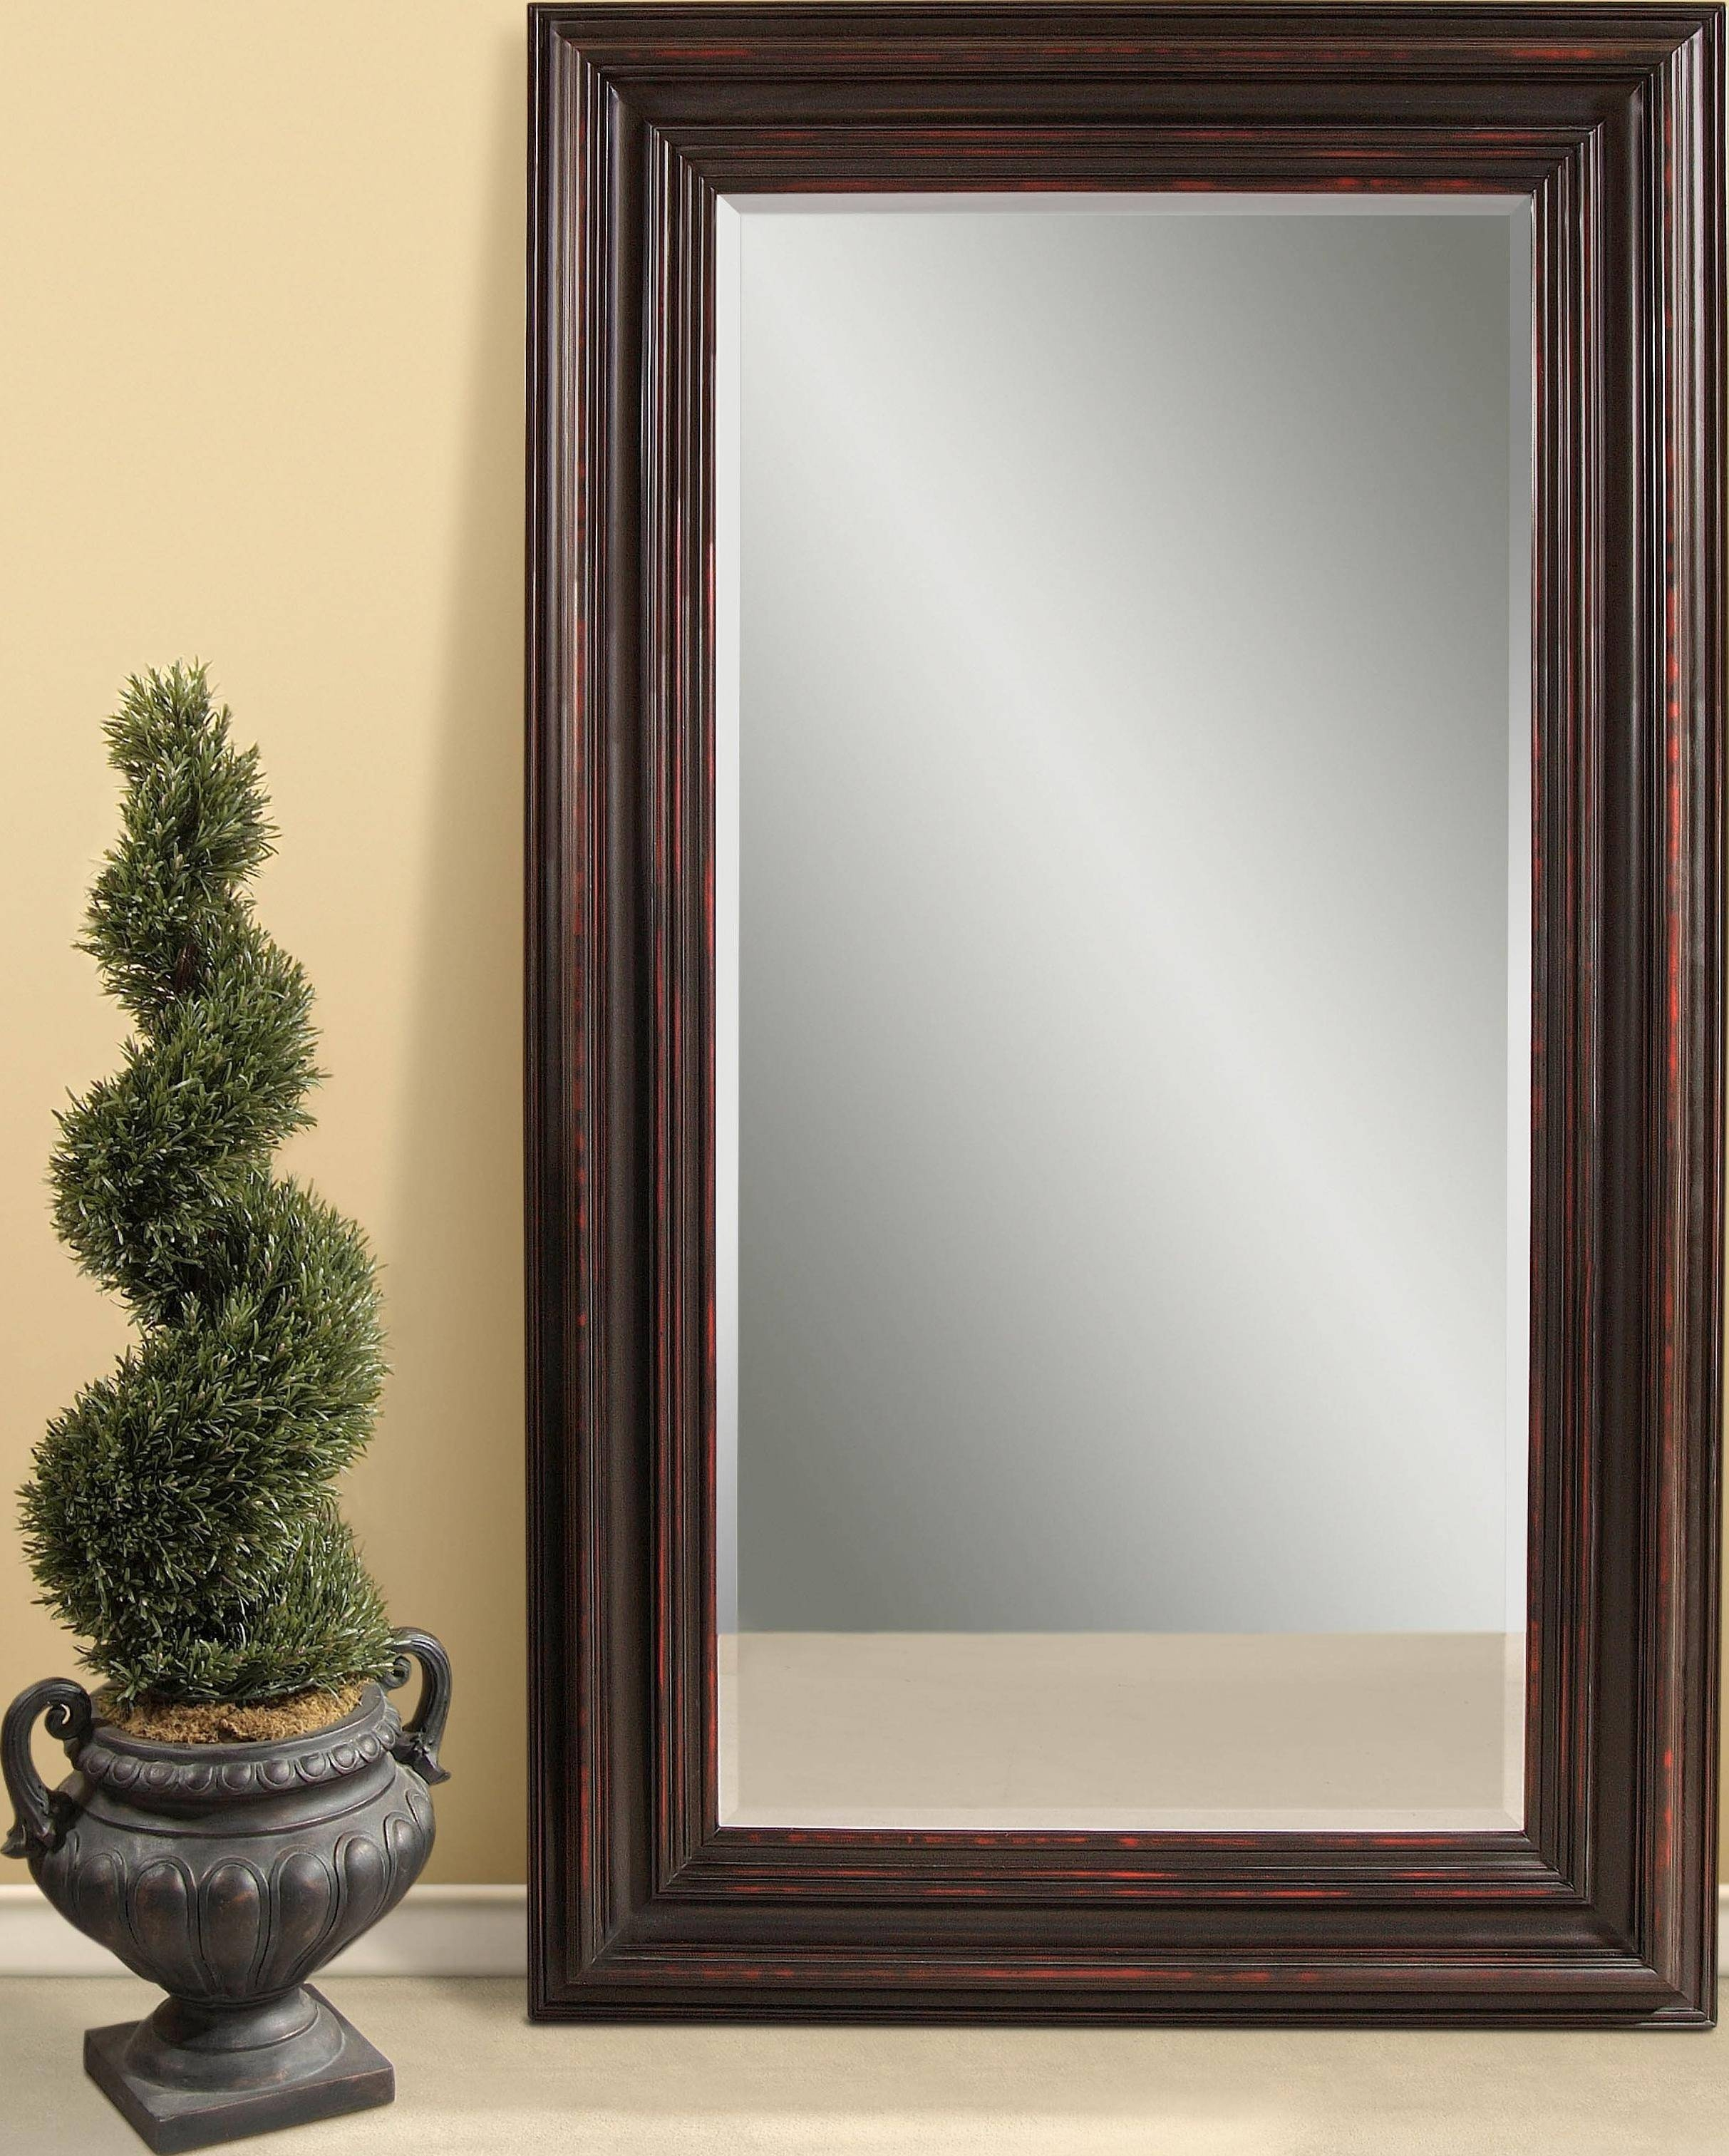 Large Wall Mirror With Frame 9 Awesome Exterior With Decorative in Black Large Mirrors (Image 10 of 15)